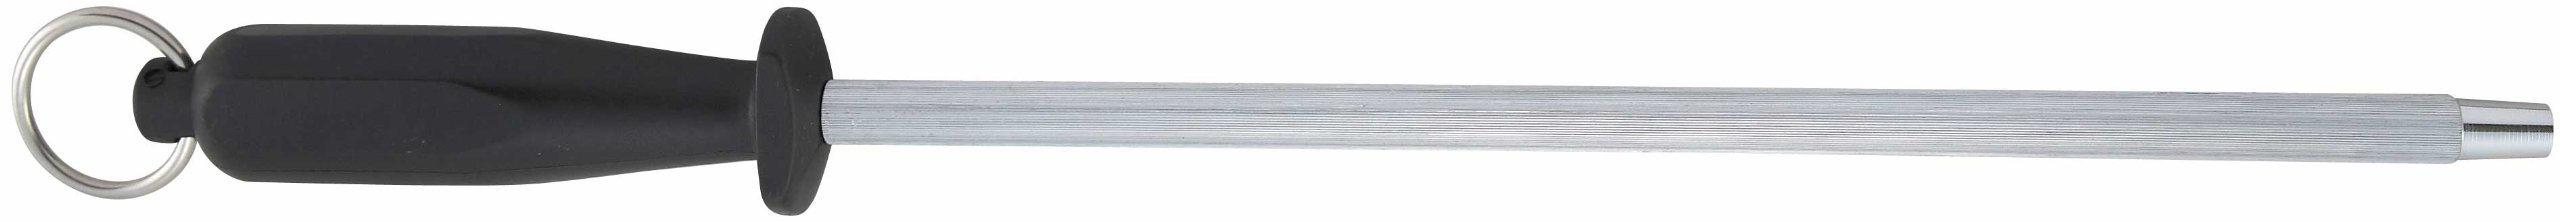 Winware Stainless Steel Sharpening Steel, 12-Inch